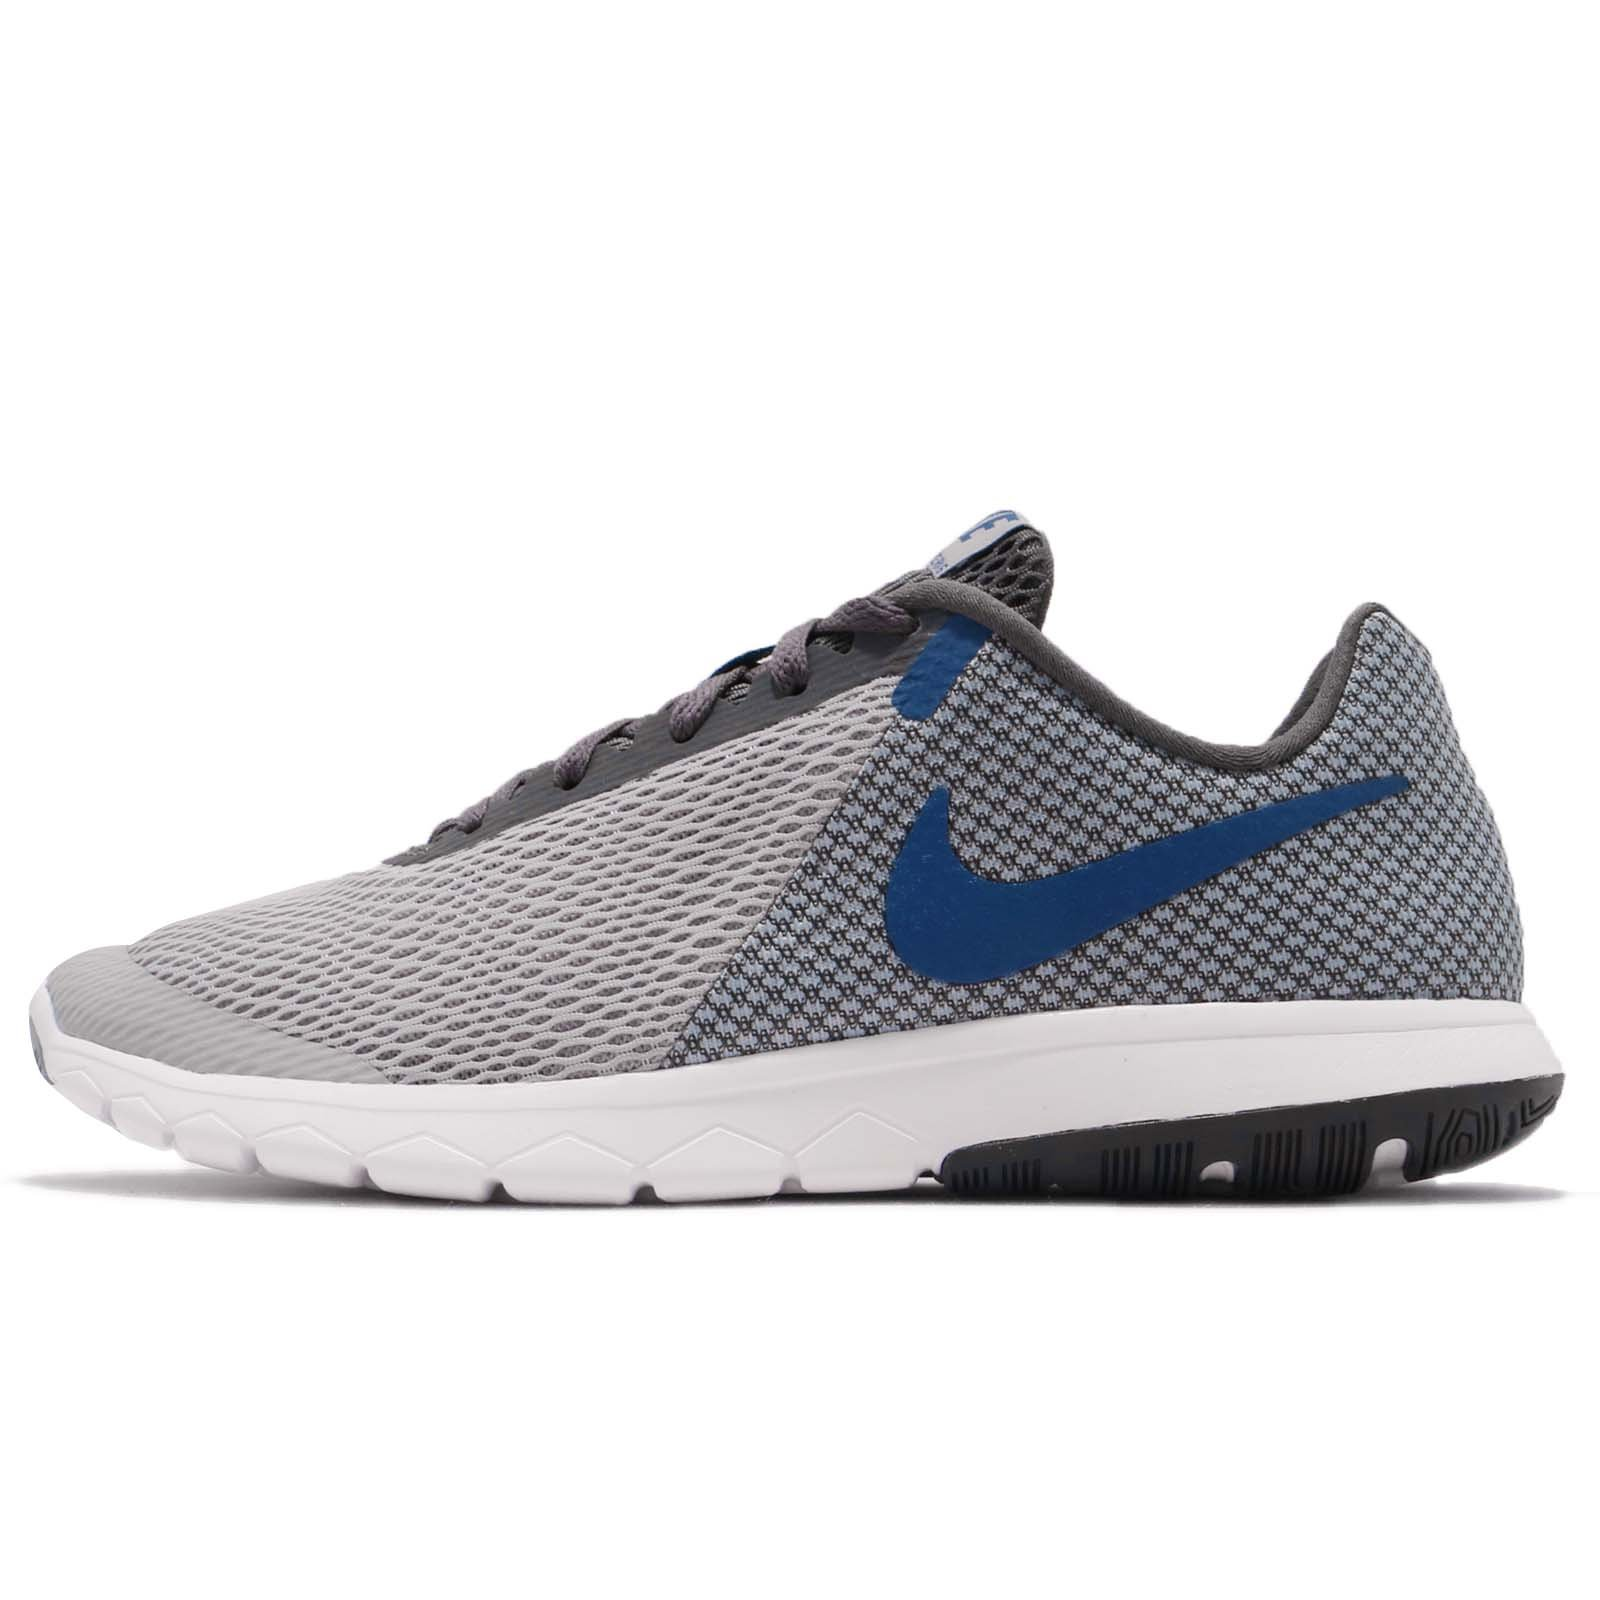 9c0b4903c524 Galleon - Nike Flex Experience RN 6 Mens Running Shoes